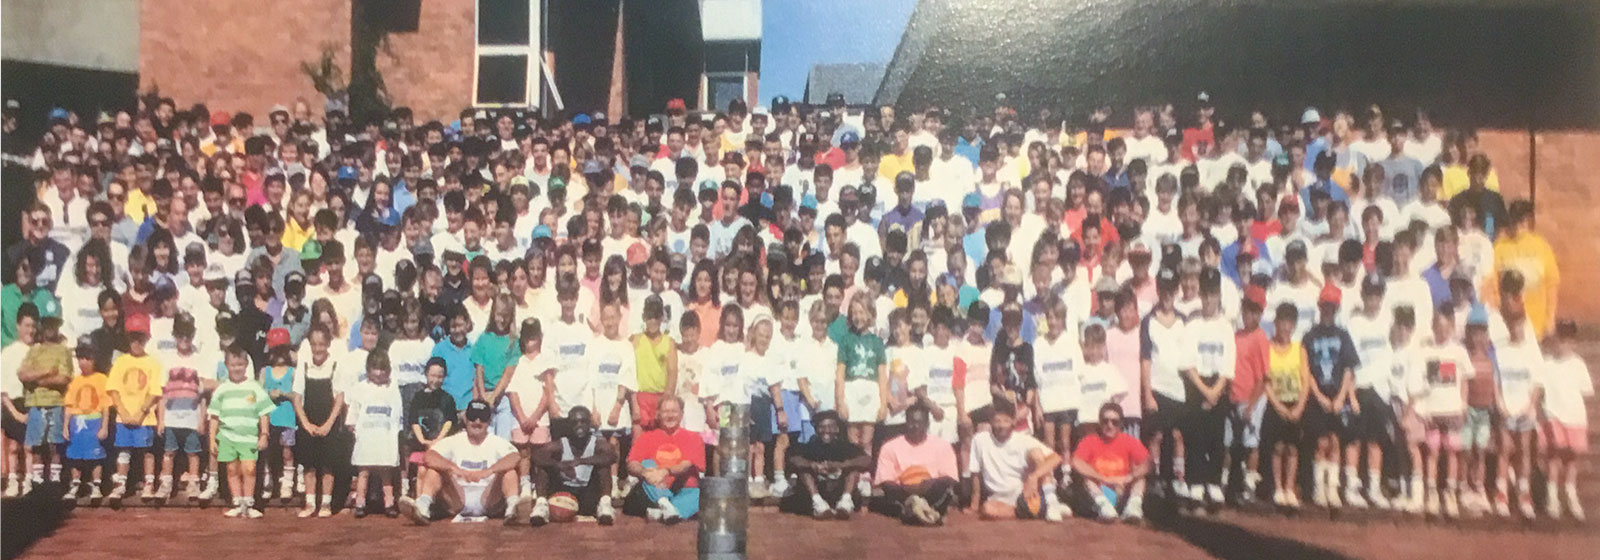 1990 Toowoomba Supercamp group shot